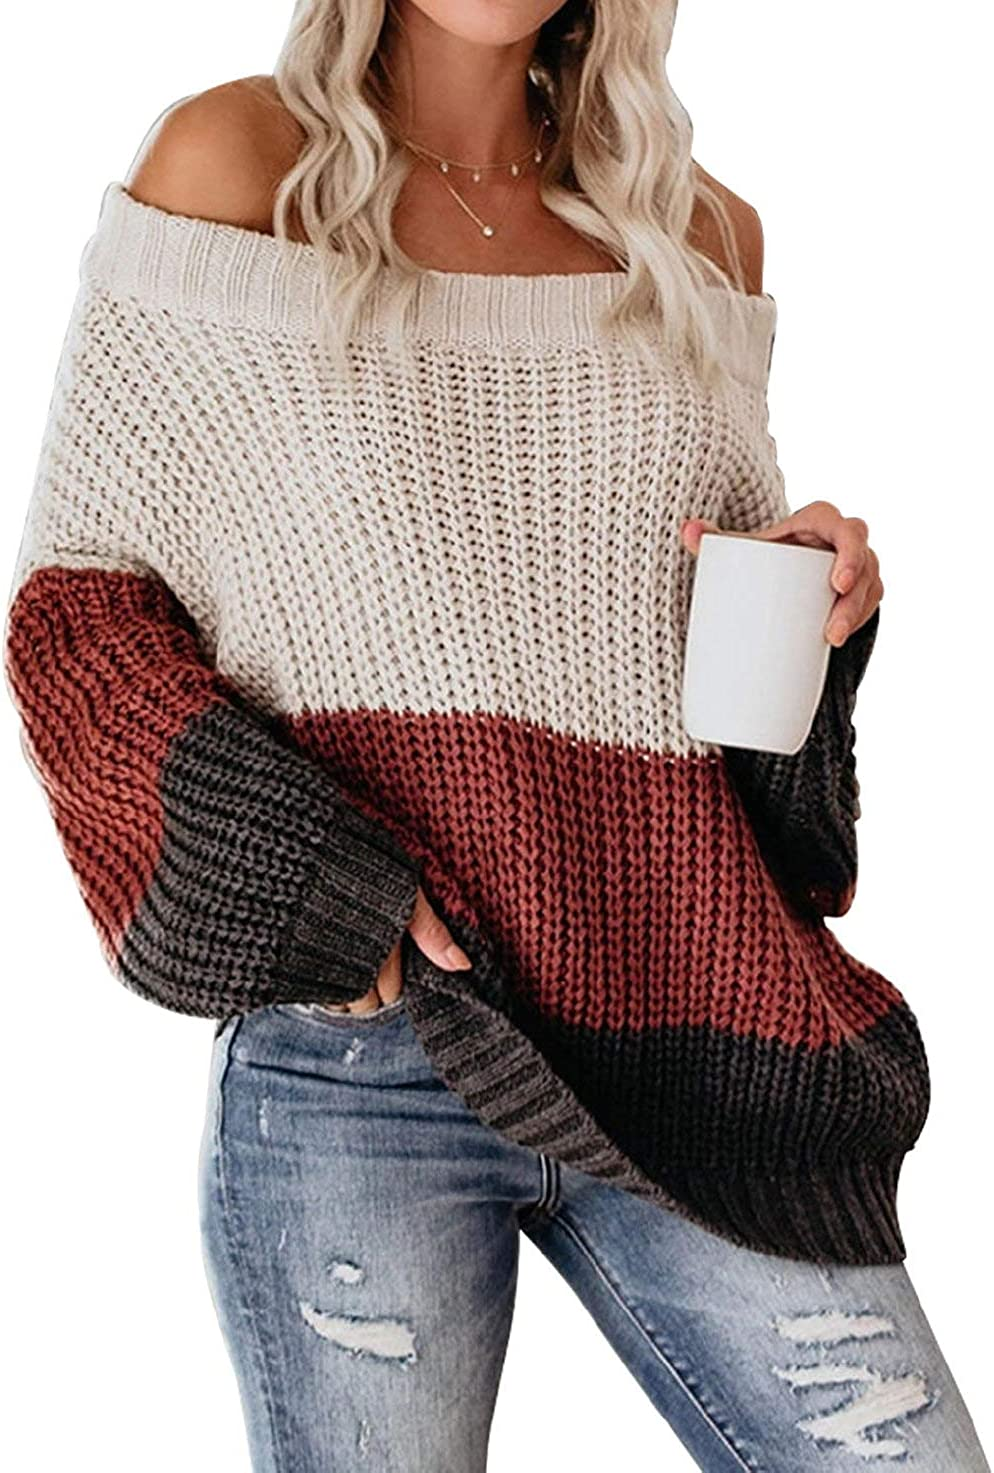 low-pricing VIMPUNEC Womens Oversized Sweater Color The P Off Shoulder Block Directly managed store